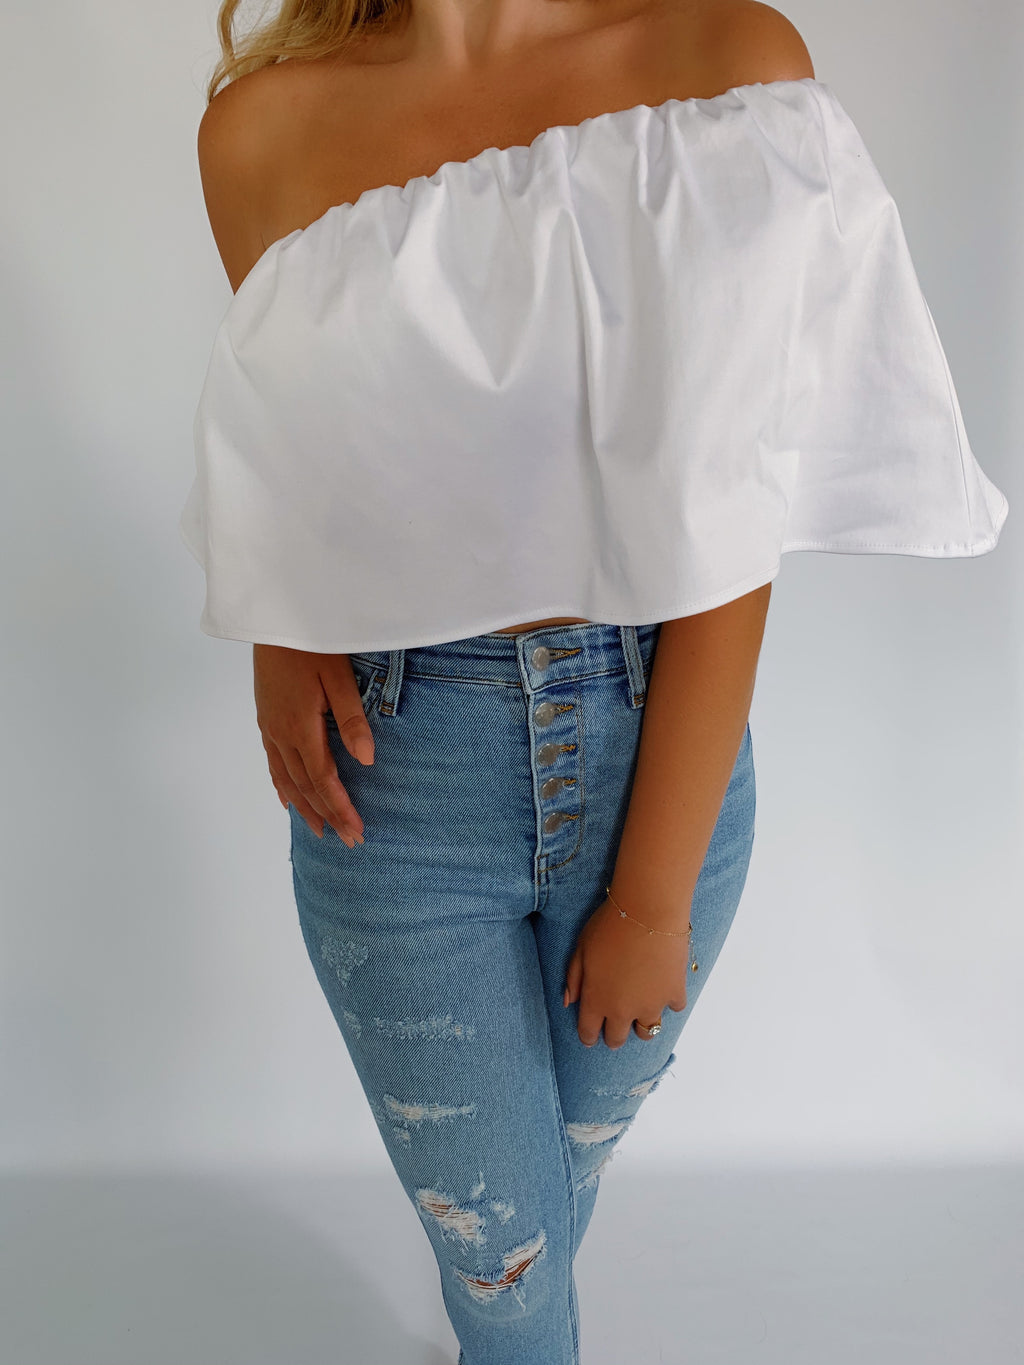 The Selina Top